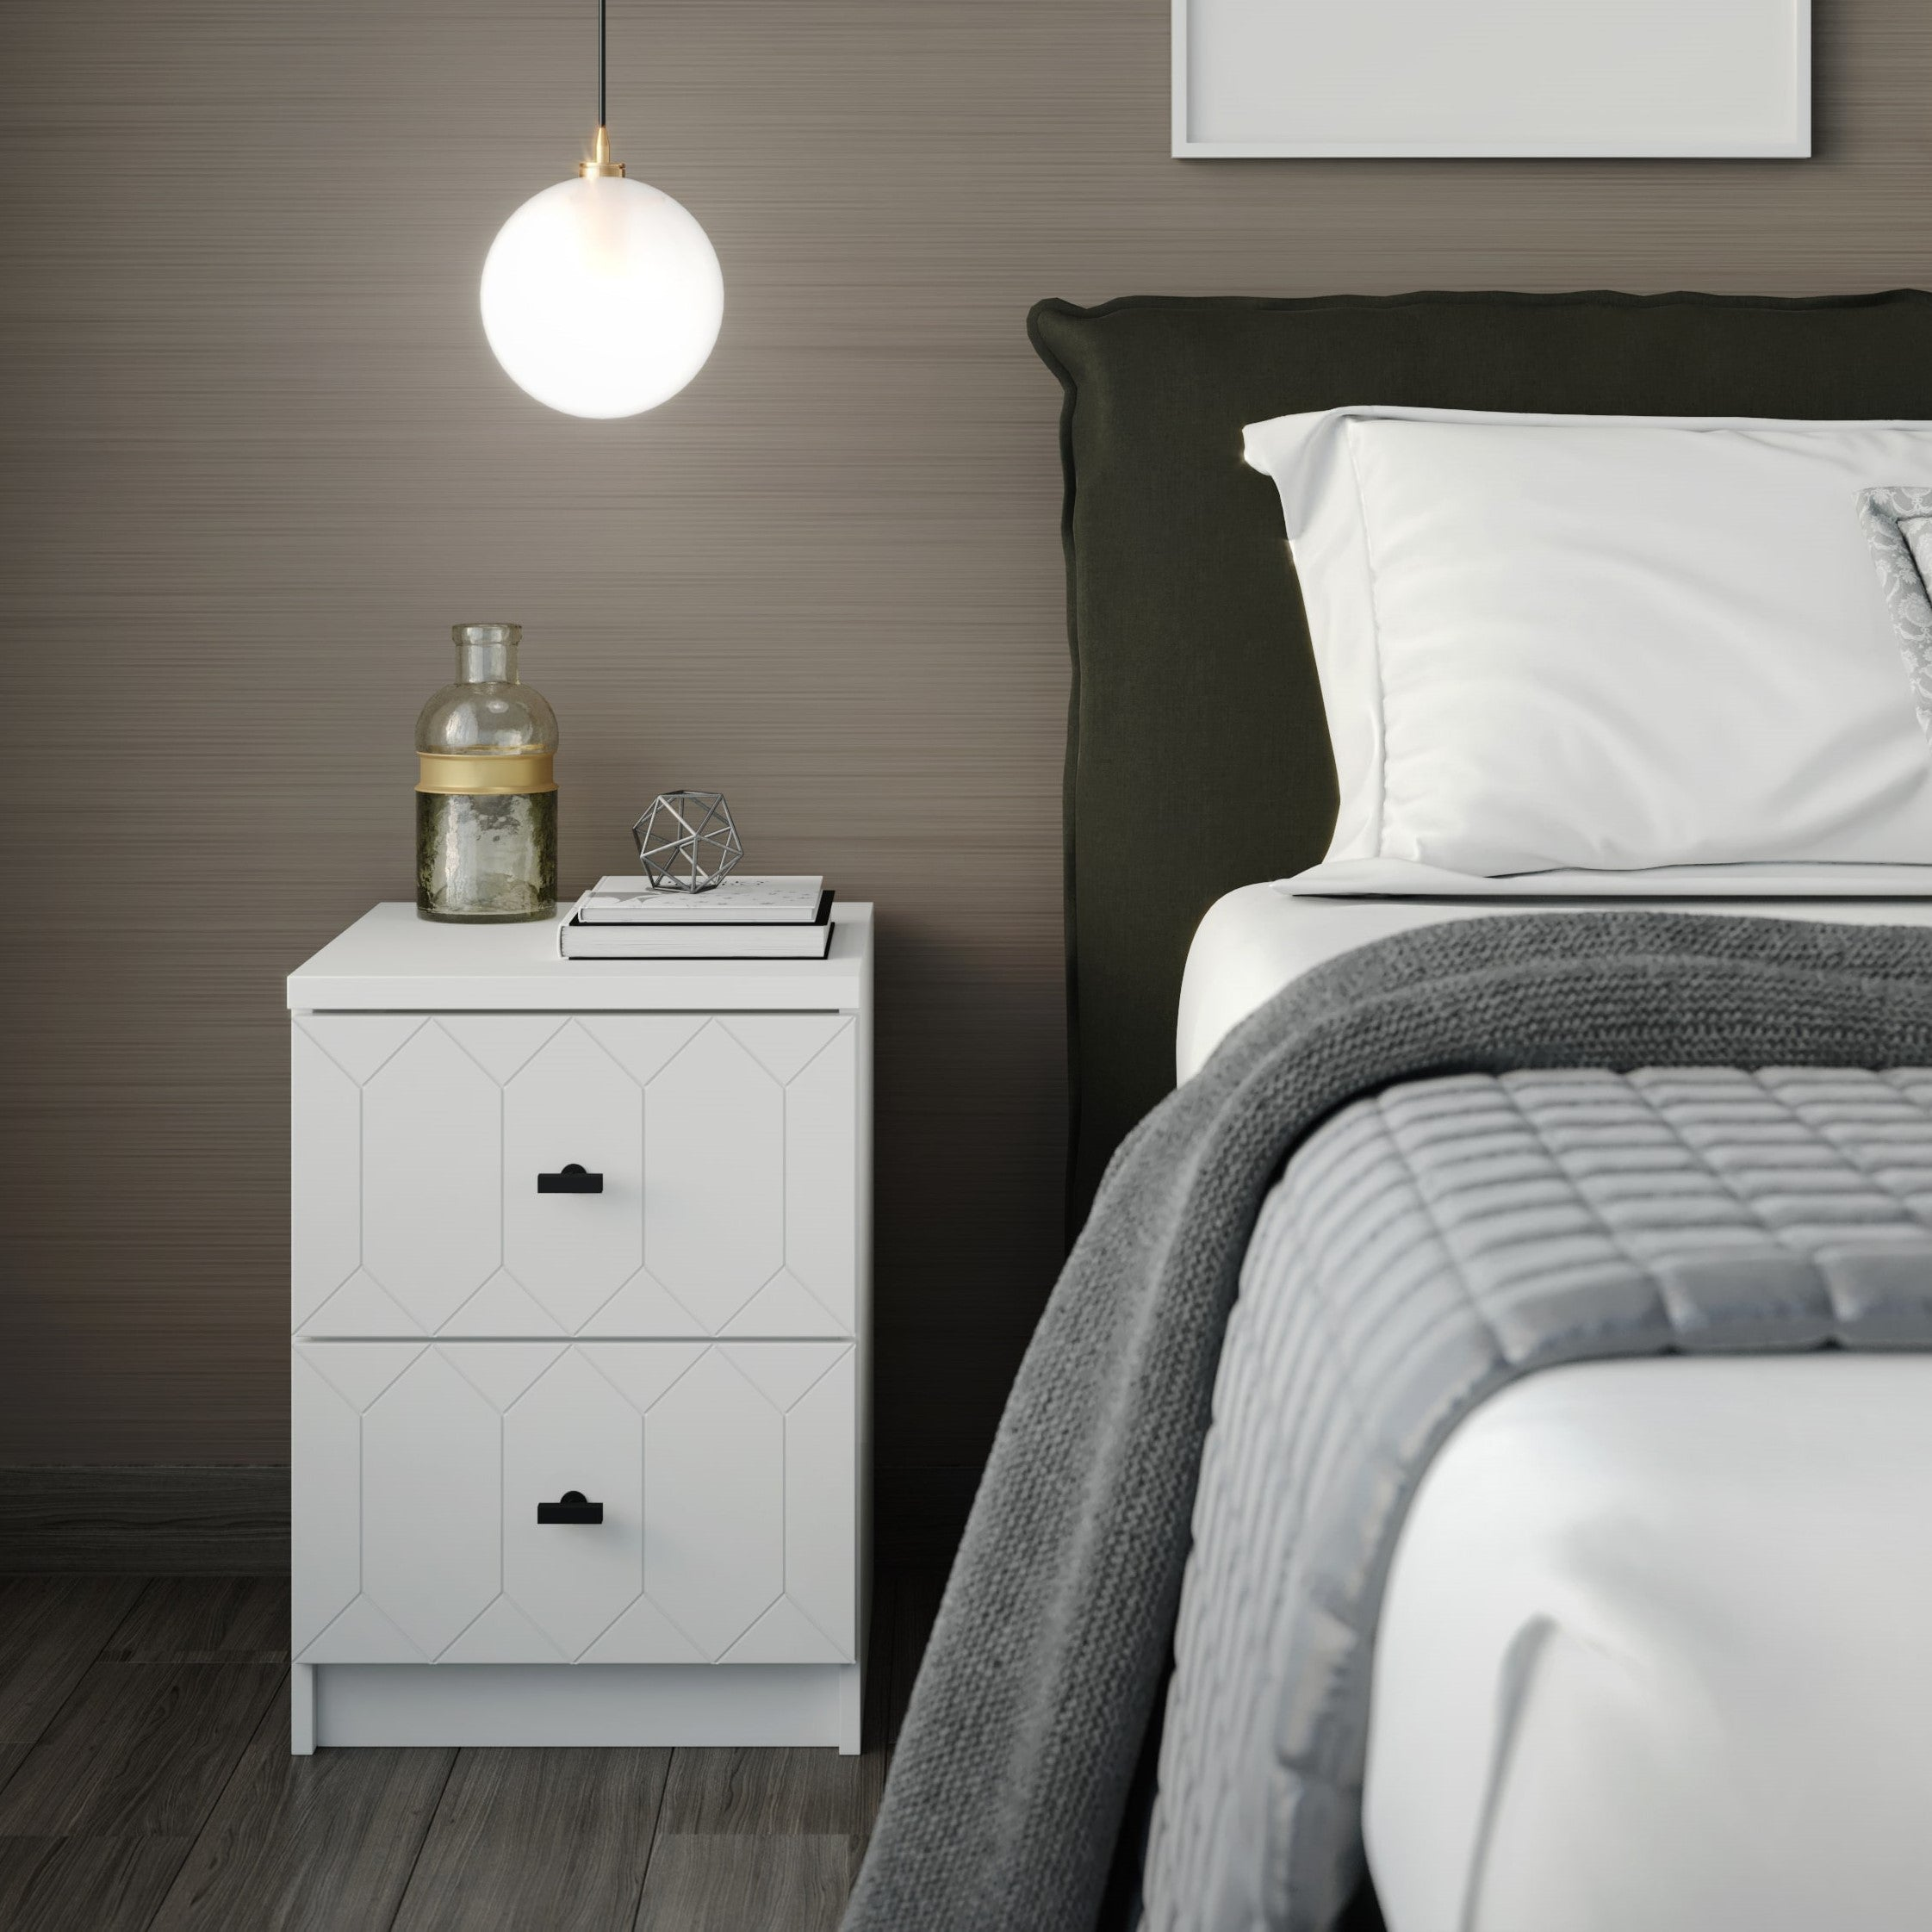 Nightstand Drawer Front Susan Pale Mocha IKEA Malm White Chrome Knob Kristina